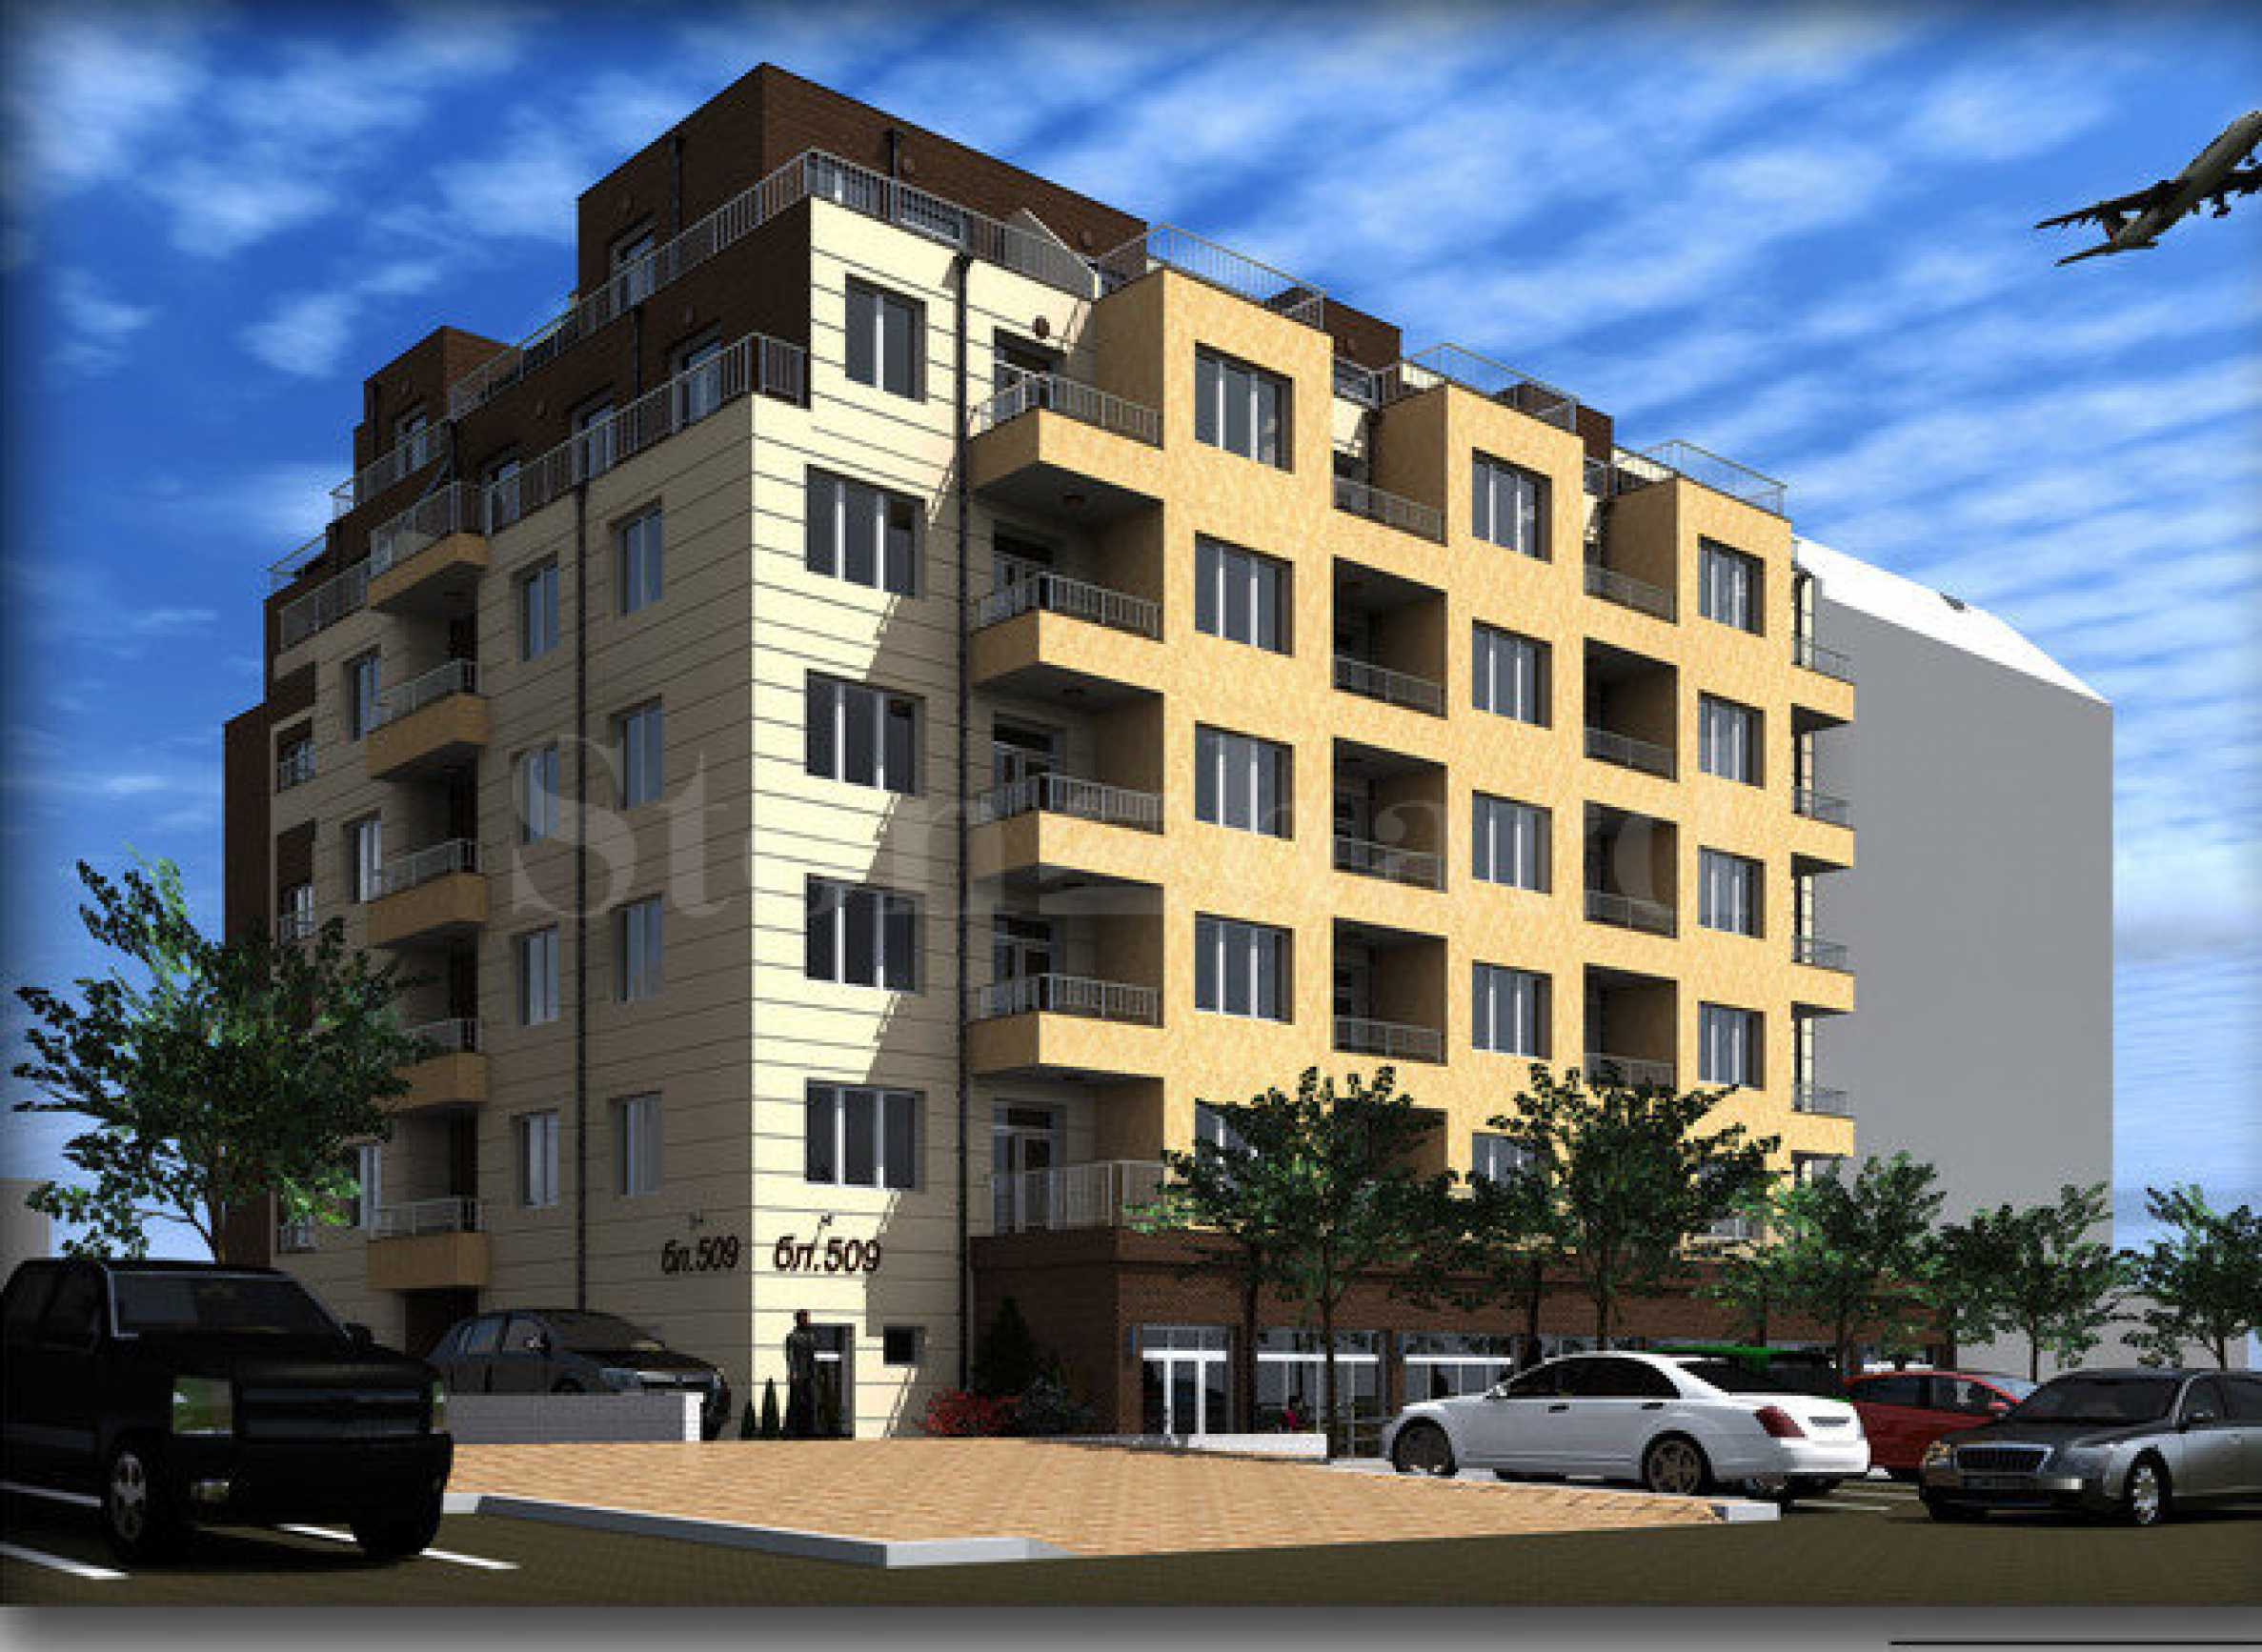 Apartments at attractive prices in a new contemporary building1 - Stonehard